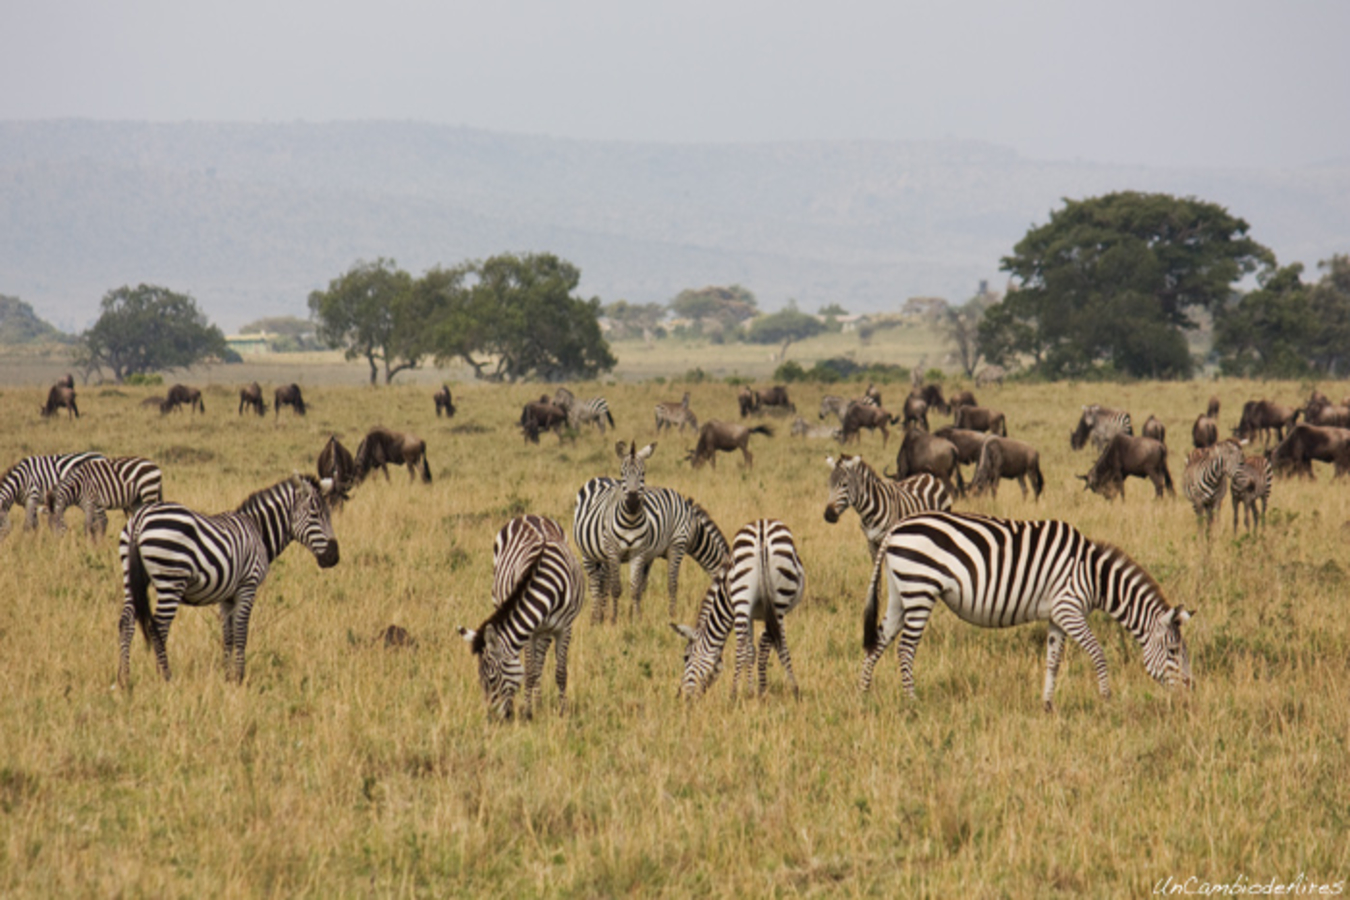 Top 8 parks and reserves in Kenya you should see in 2018